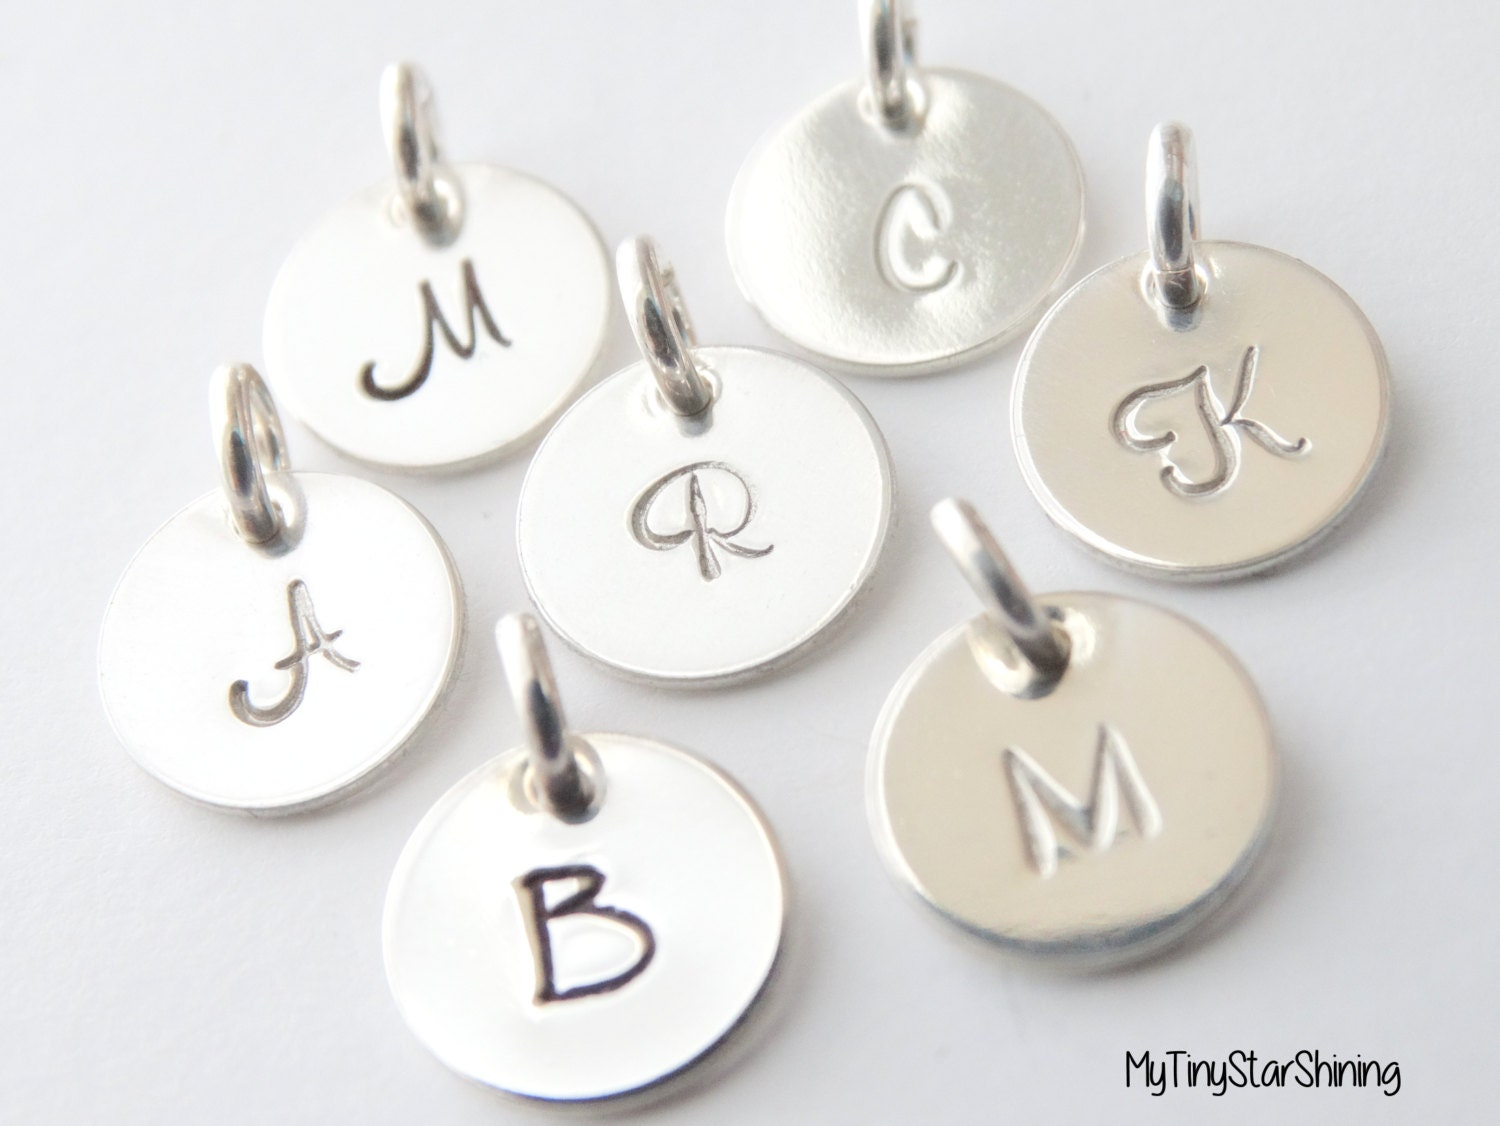 Silver initial charm initial pendant personalized initial charms silver initial charm initial pendant personalized initial charms sterling silver initial jewelry handstamped initial charm tiny letter charm aloadofball Images